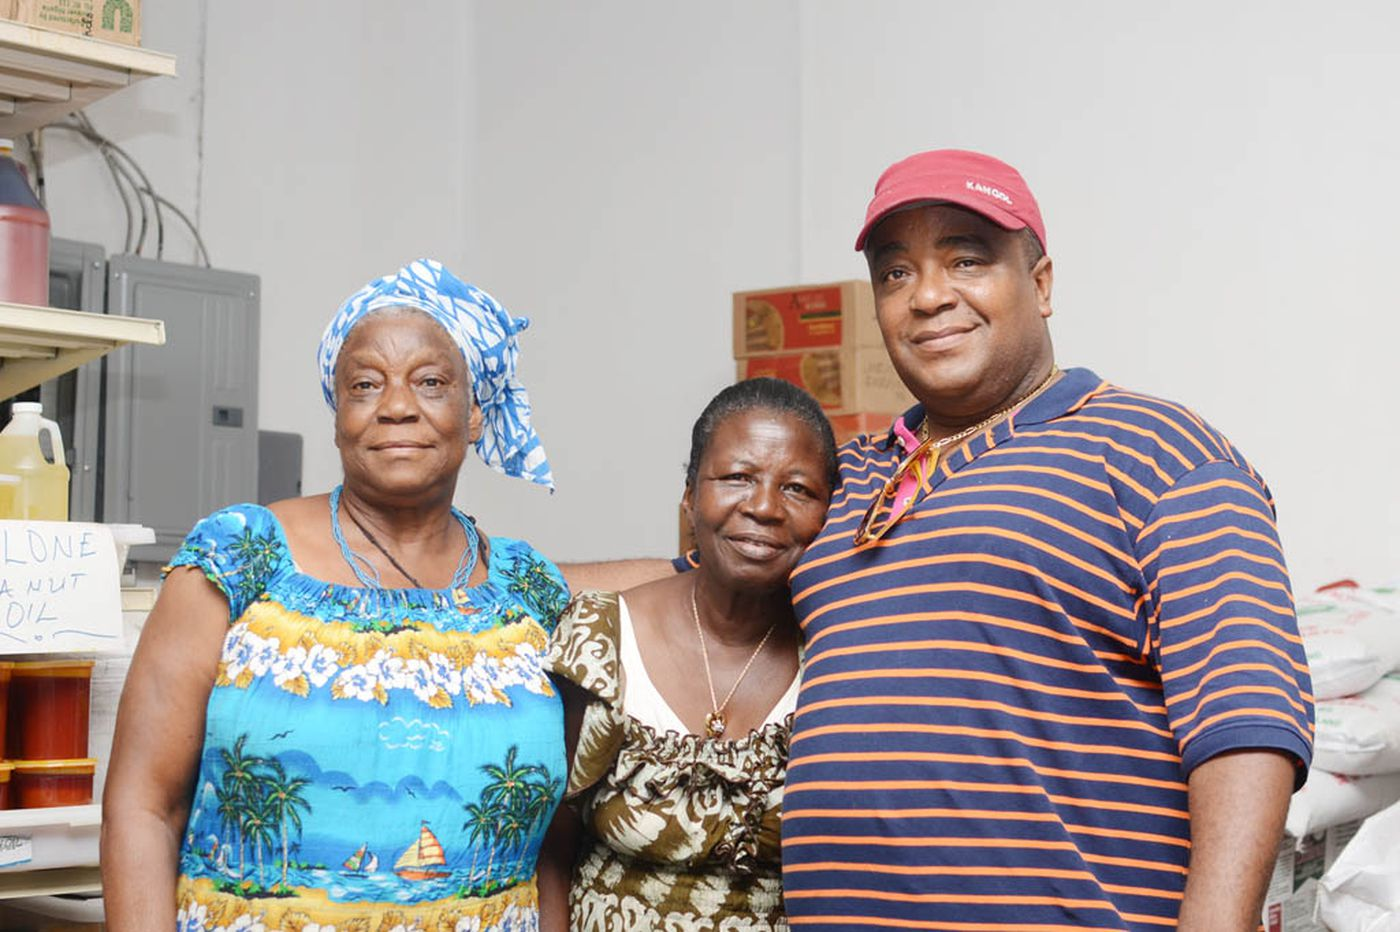 Southwest Philly home to Liberian community